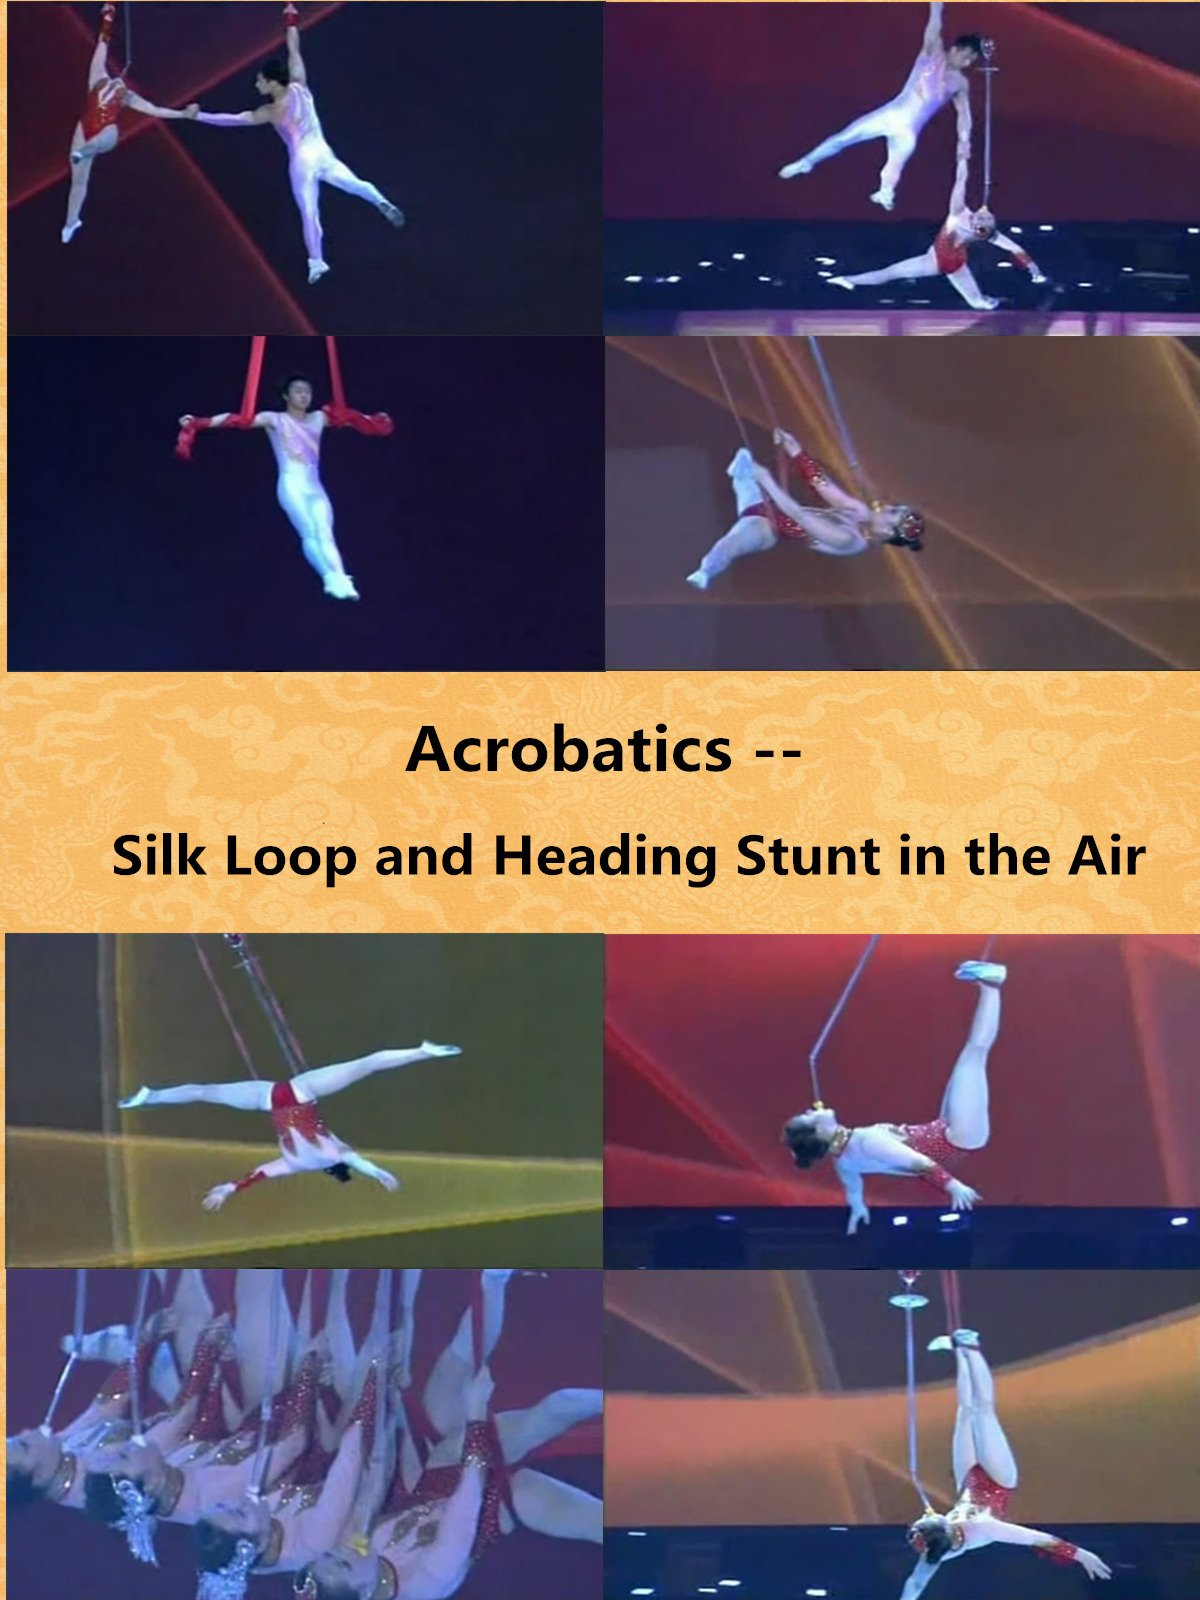 Clip: Acrobatics -- Silk Loop and Heading Stunt in the Air